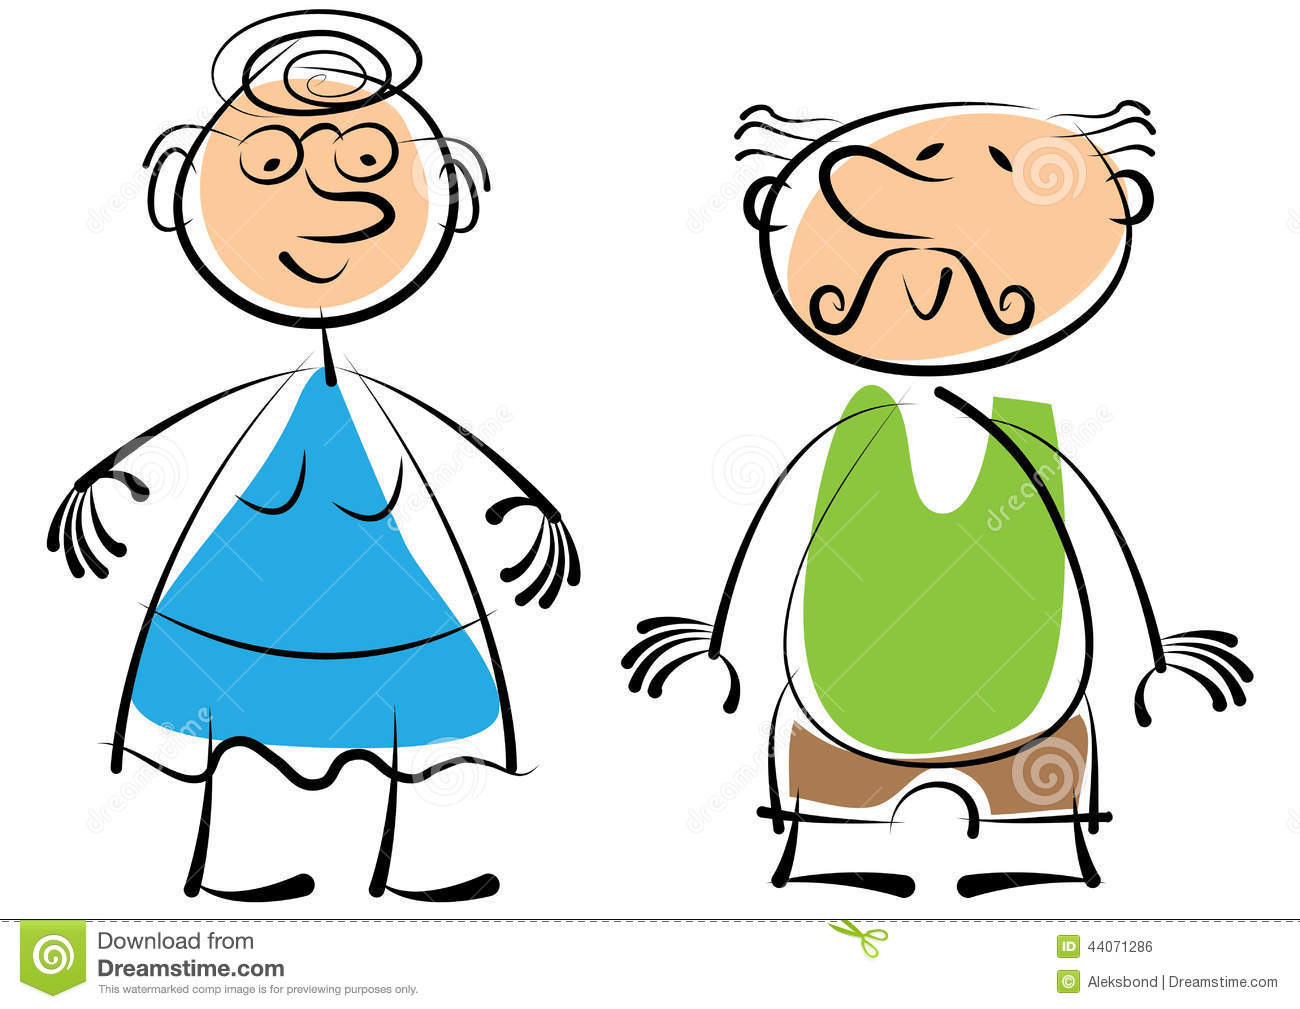 Groeltern und enkel clipart svg freeuse download Grandmother And The Grandfather Isolated On White Stock ... svg freeuse download